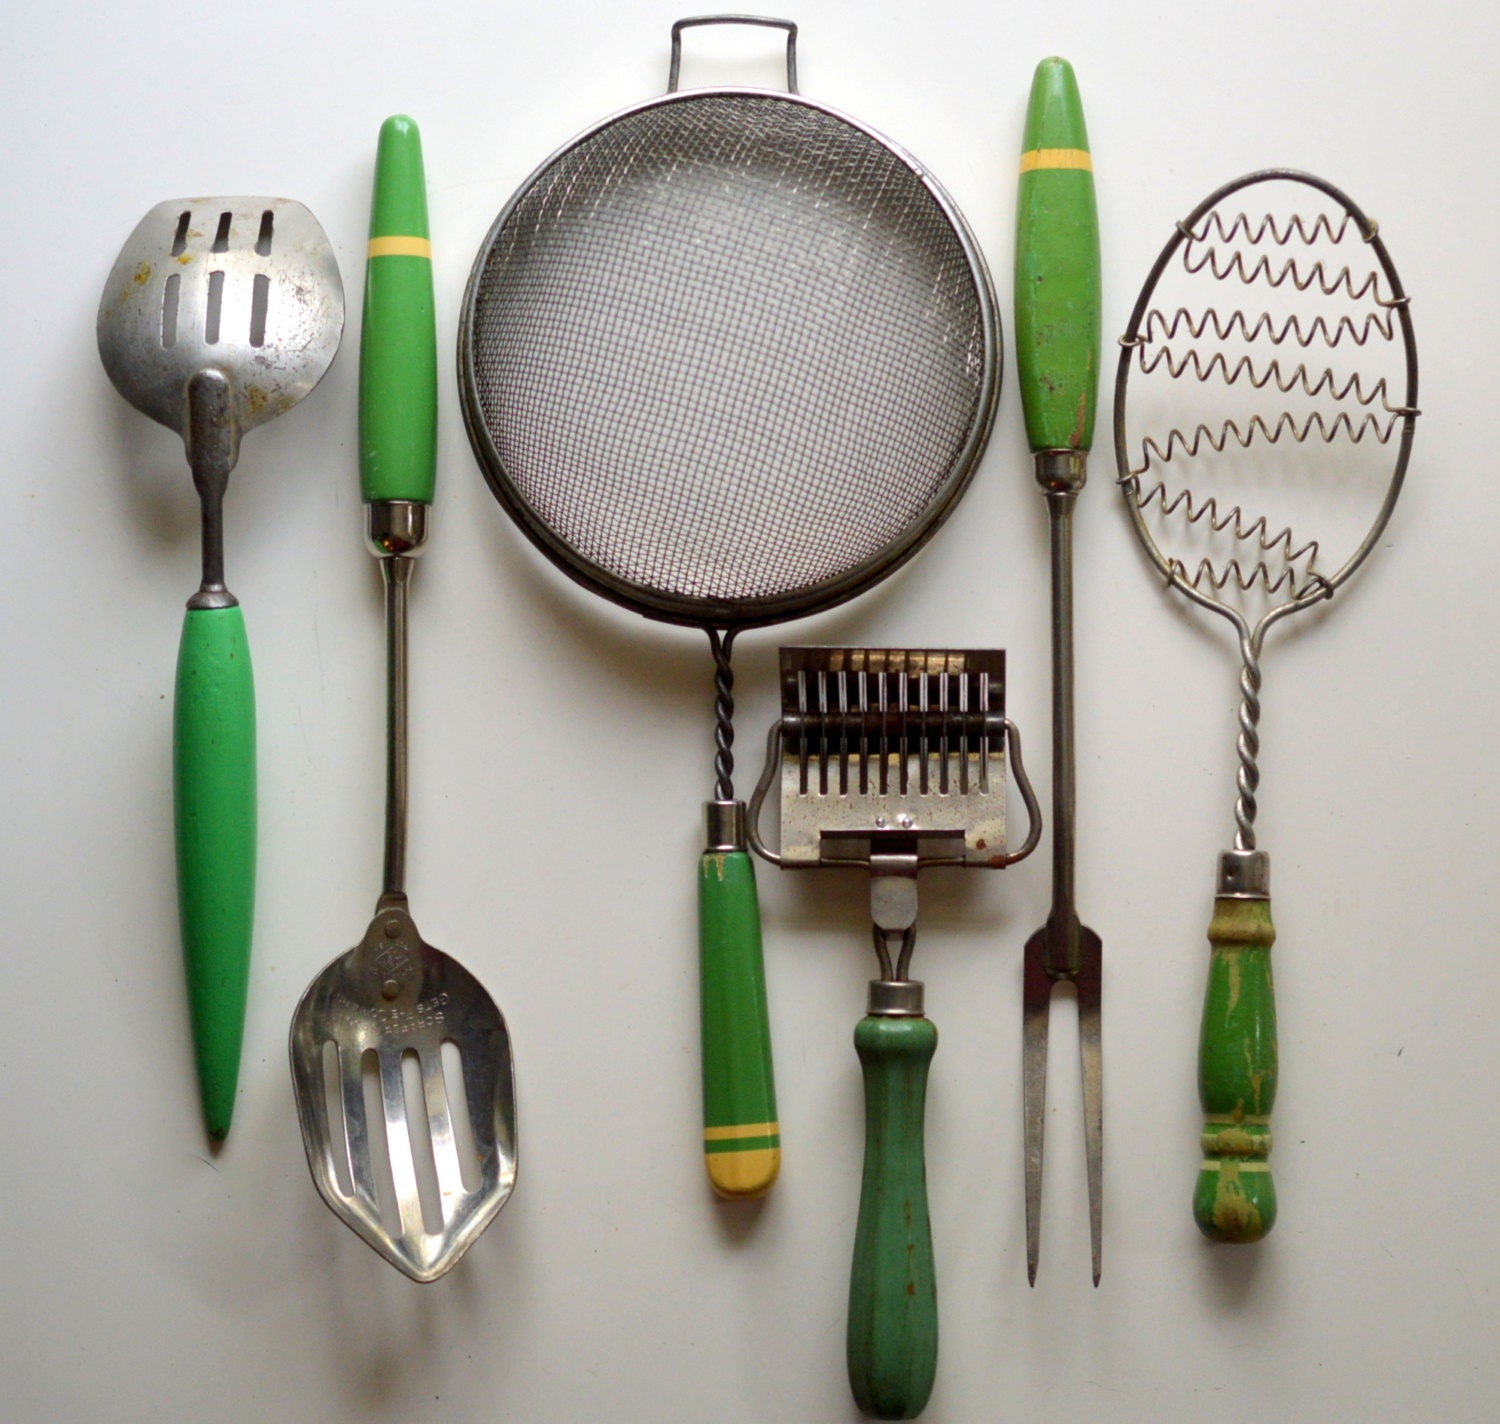 Vintage Kitchen Utensils Green Wood Handles Sieve Slotted